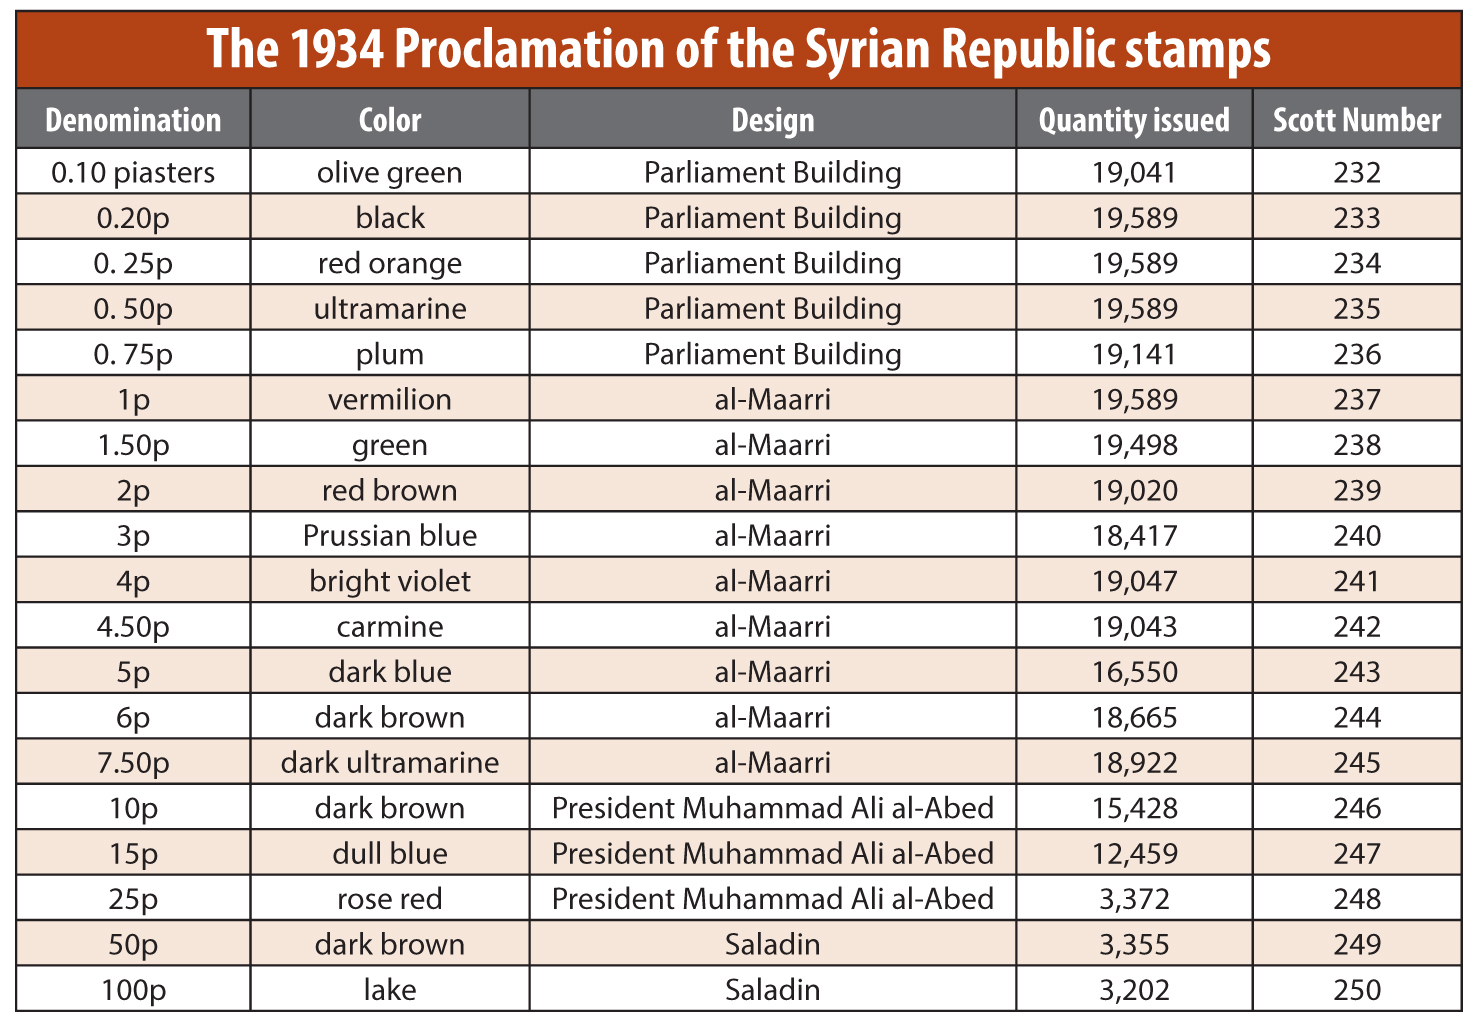 syria-1934-republic-commemorative-stamps-table